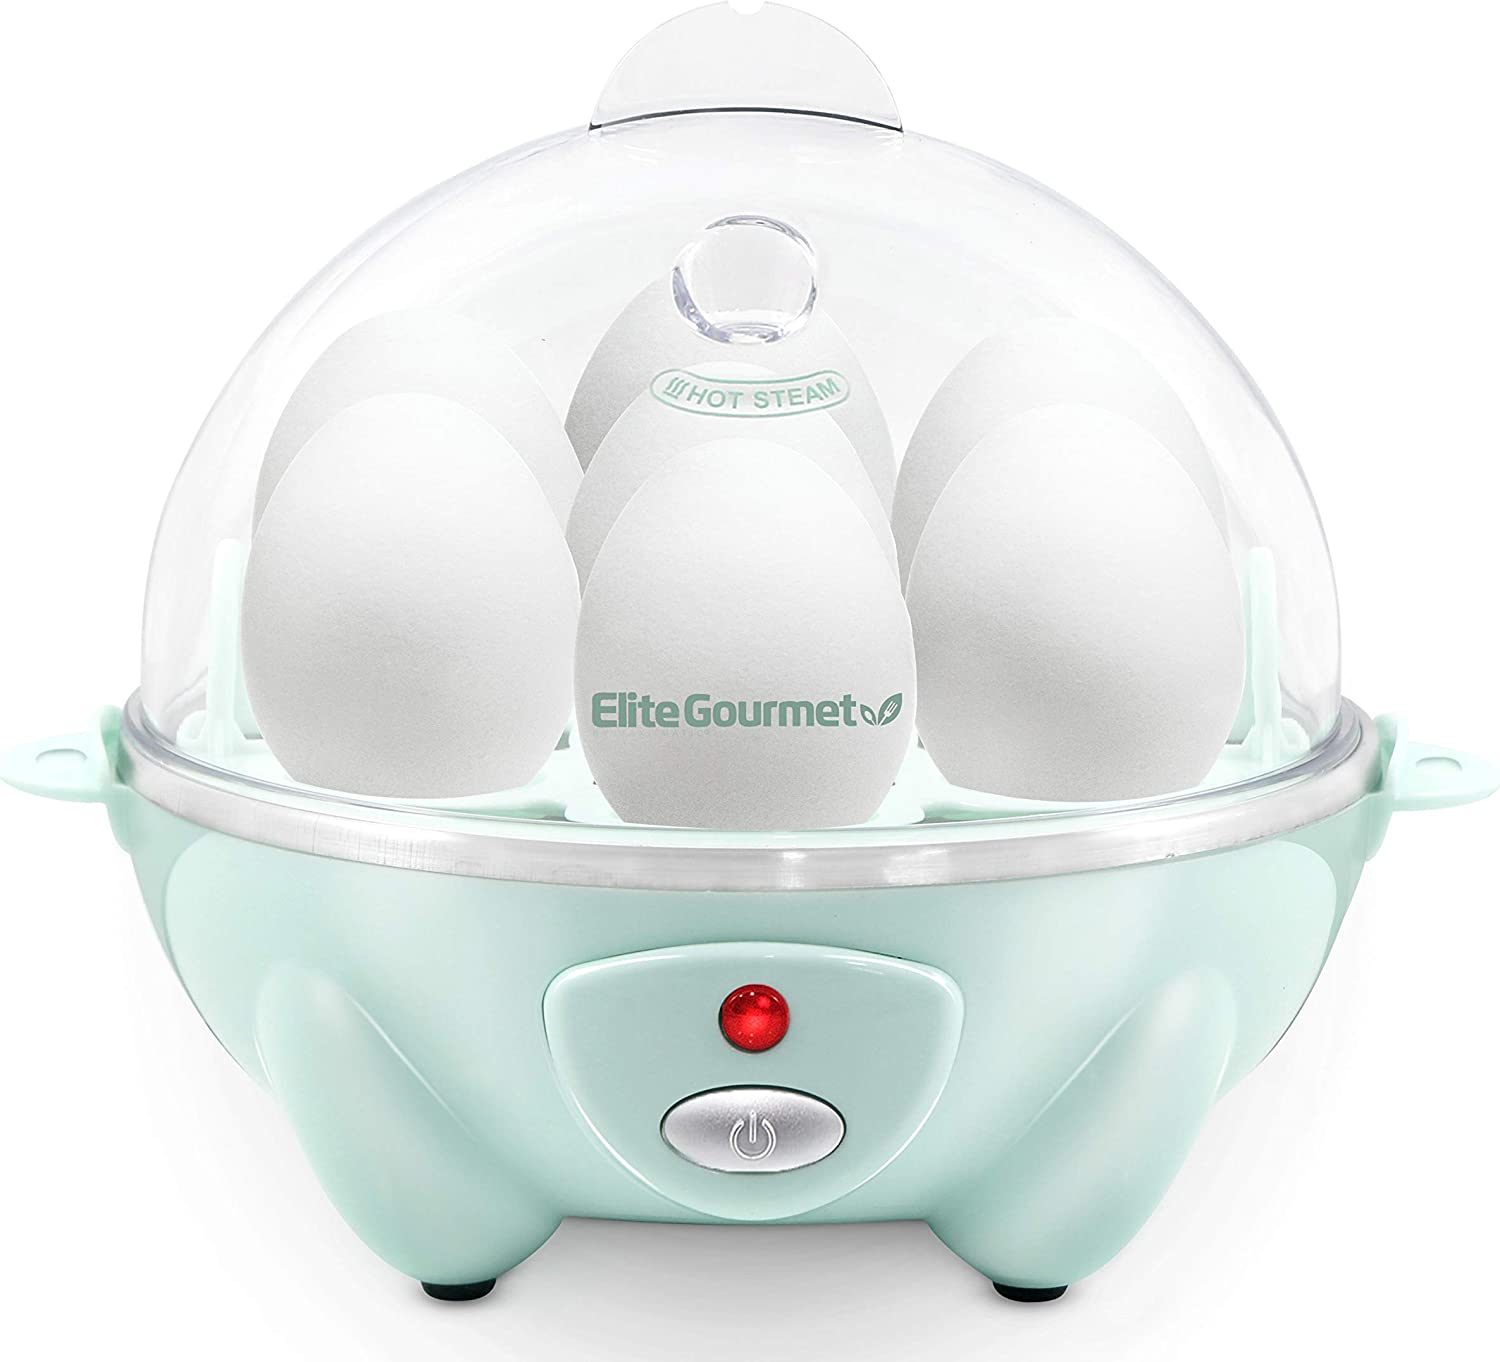 Elite Gourmet EGC-007M Easy Electric Poacher, Omelet Soft, Medium, Hard-Boiled Boiler Cooker with Auto Shut-Off and Buzzer, BPA Free, 7 Egg Capacity, Mint (Renewed)